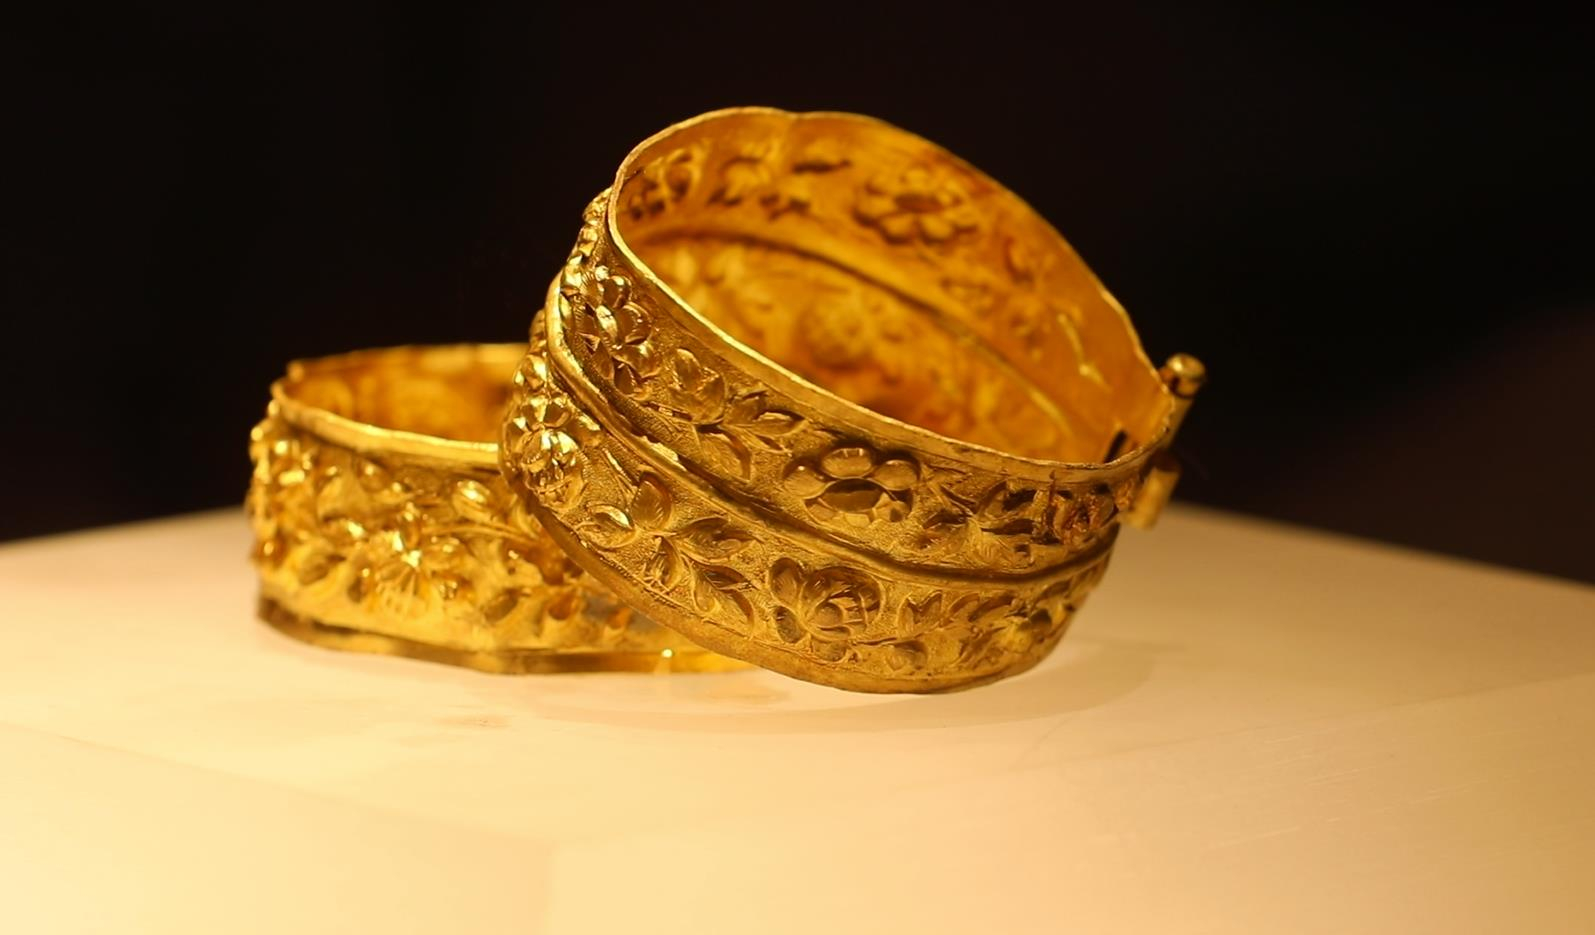 A pair of golden bangles discovered on Nanhai One shipwreck